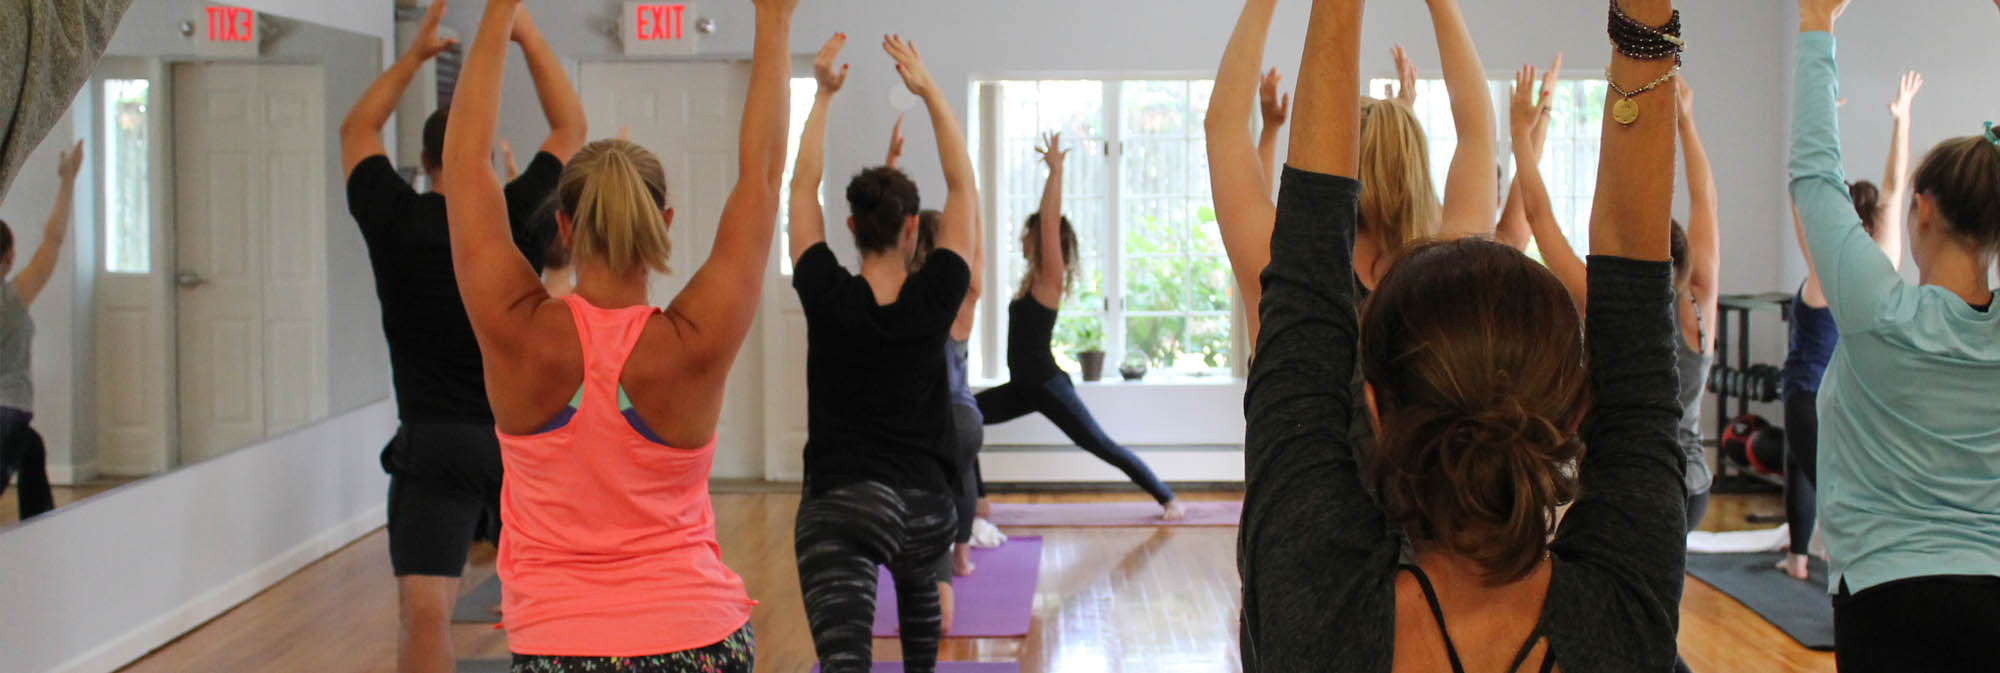 Yoga. Fitness. Promotional Pricing at Sound Body & Mind.